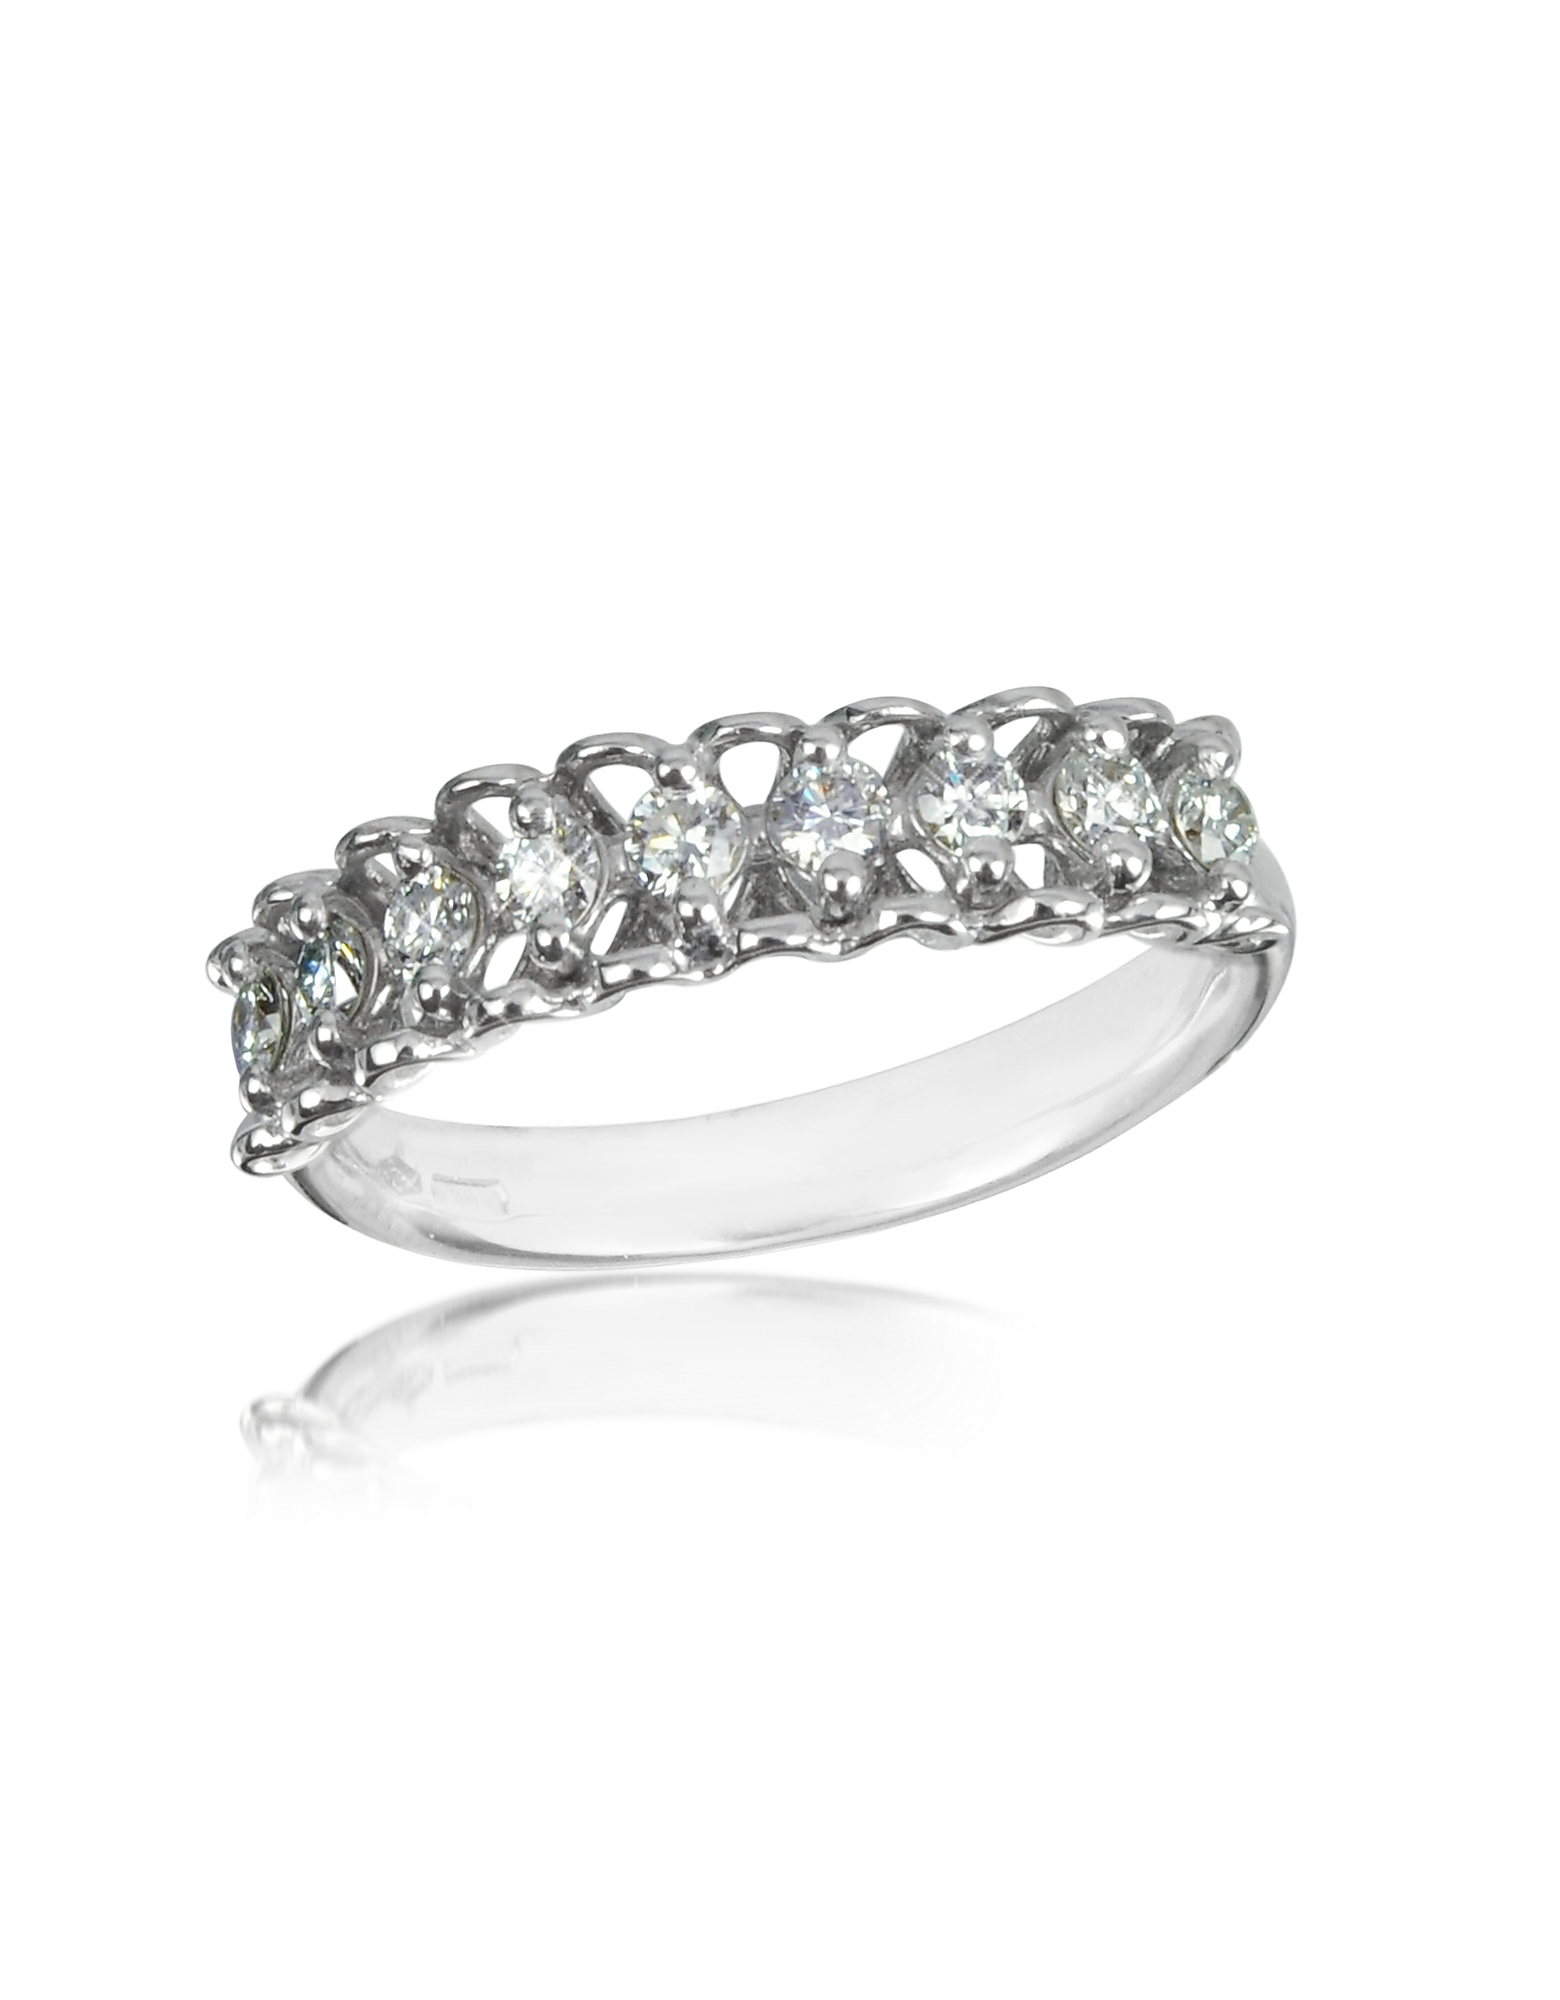 Forzieri Rings, 0.37 ctw Nine-Stone Diamond 18K White Gold Ring